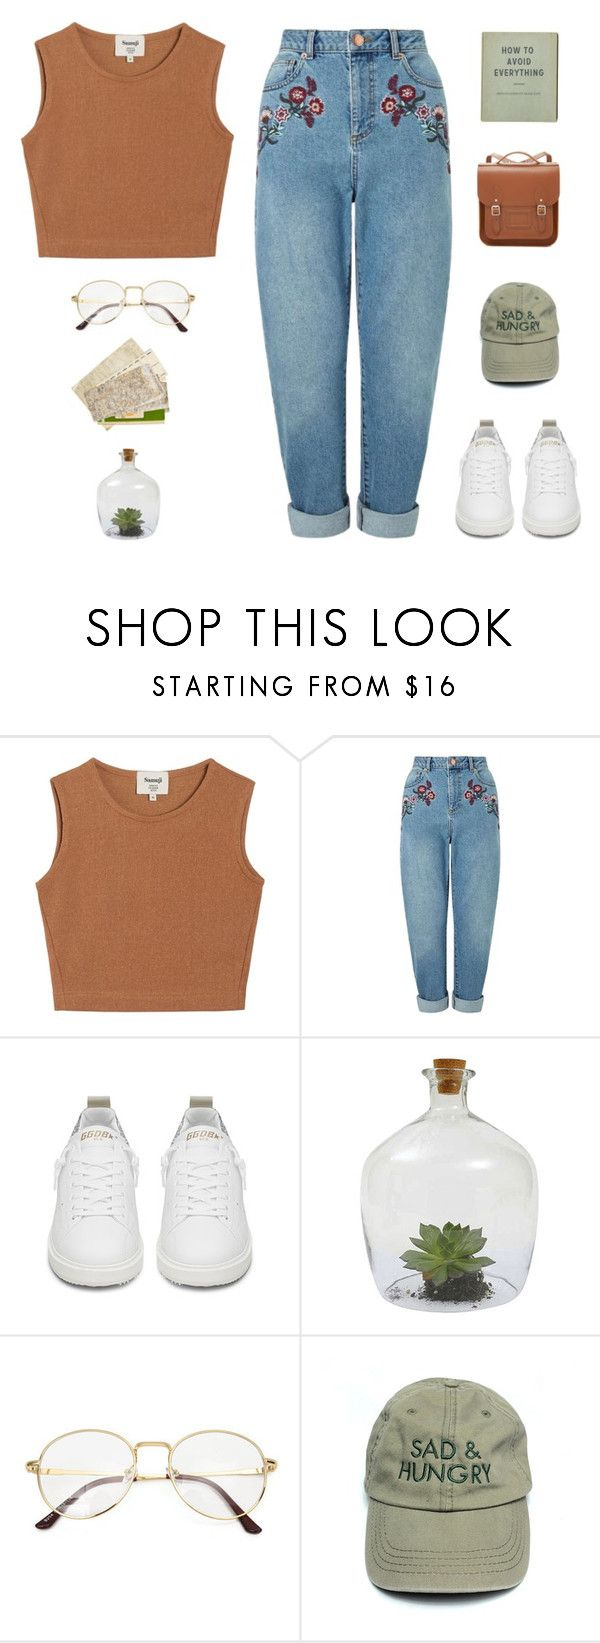 """""""25.7.17 // 00:00"""" by theonlynewgirl ❤ liked on Polyvore featuring Samuji, Miss Selfridge, Golden Goose, Dot & Bo and The Cambridge Satchel Company"""